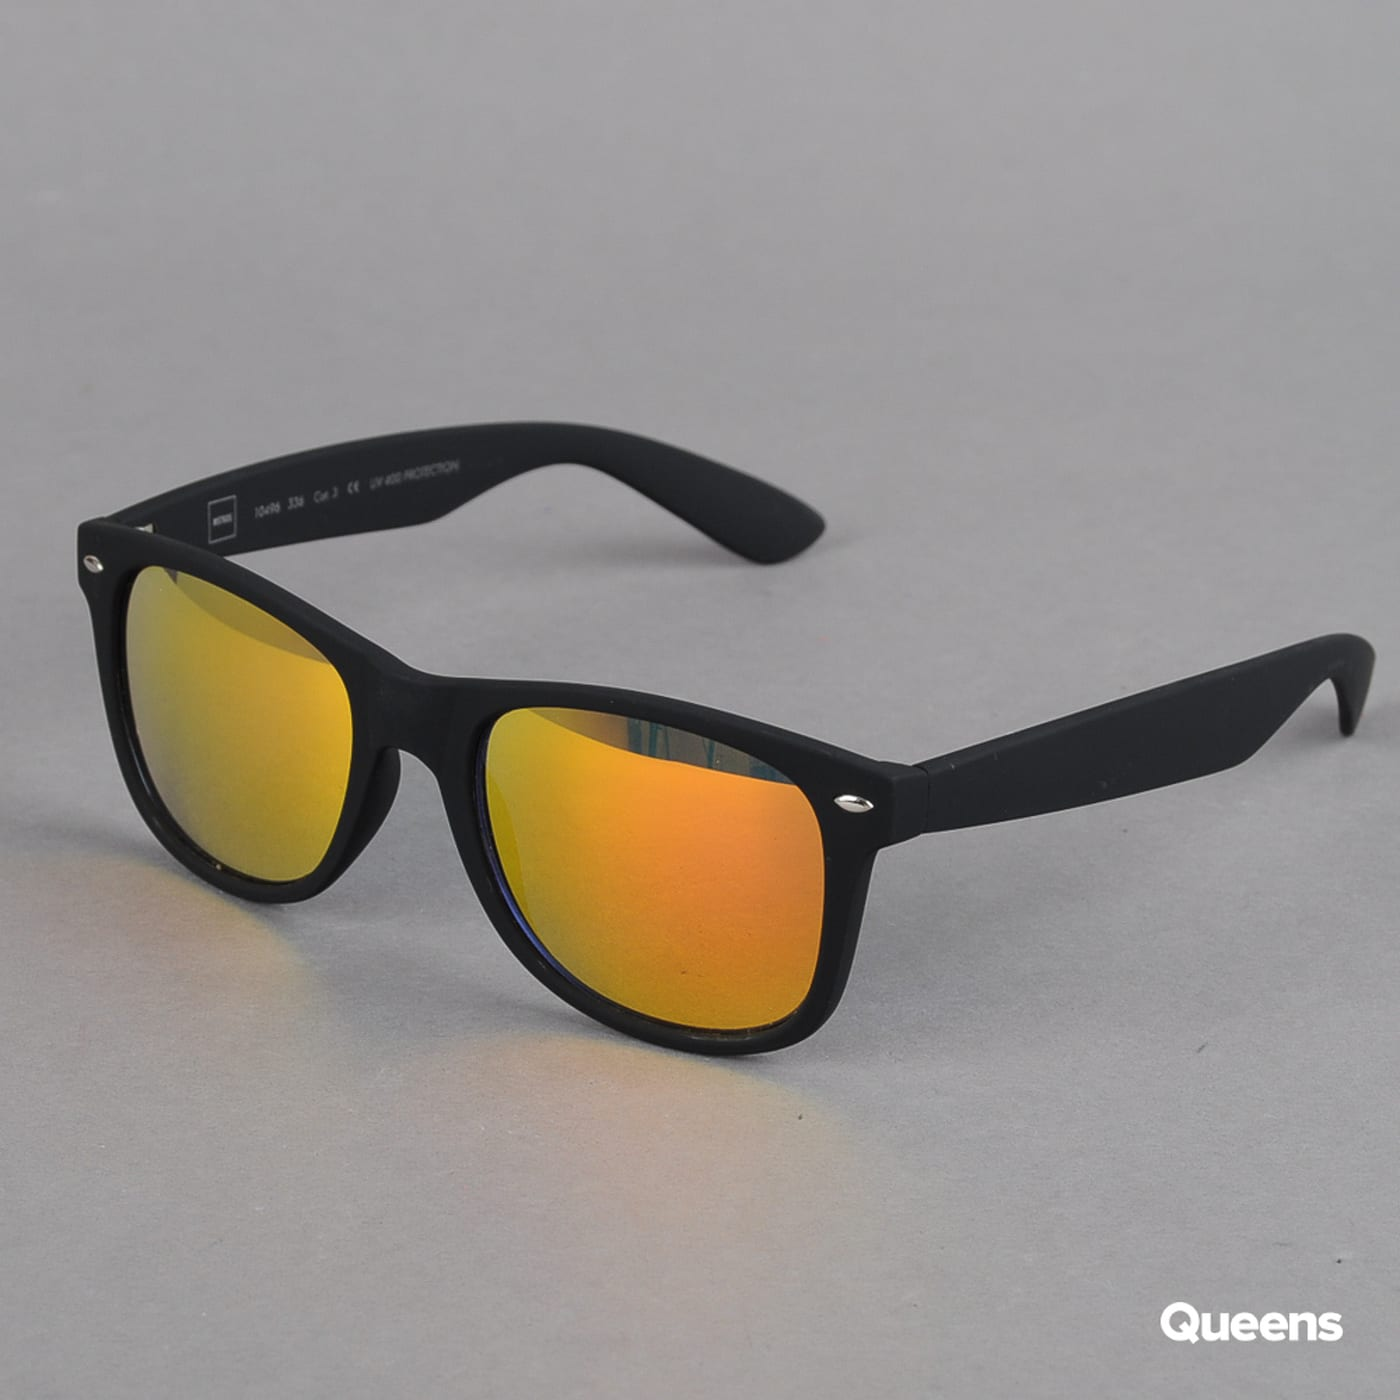 MD Sunglasses Likoma Mirror schwarz / orange